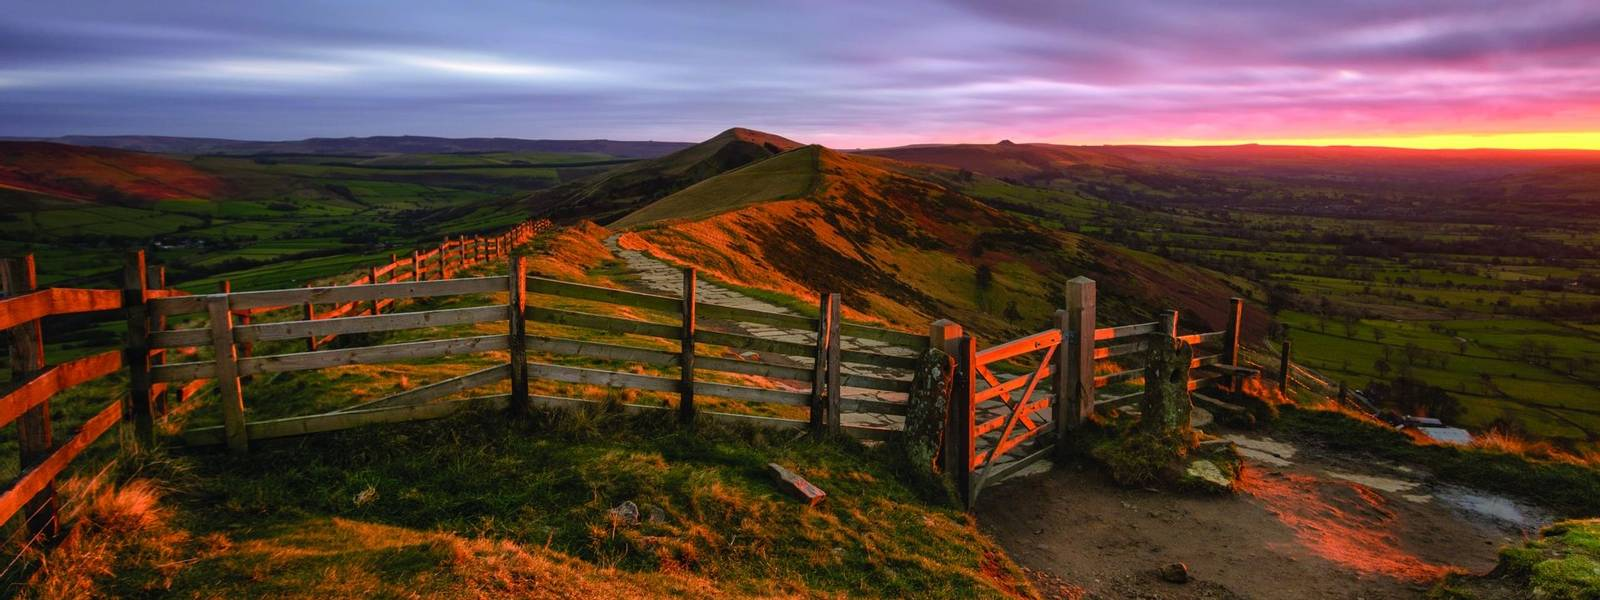 Glowing red light from the rising sun shining on countryside gate at Mam Tor in the Peak District with moody clouds.